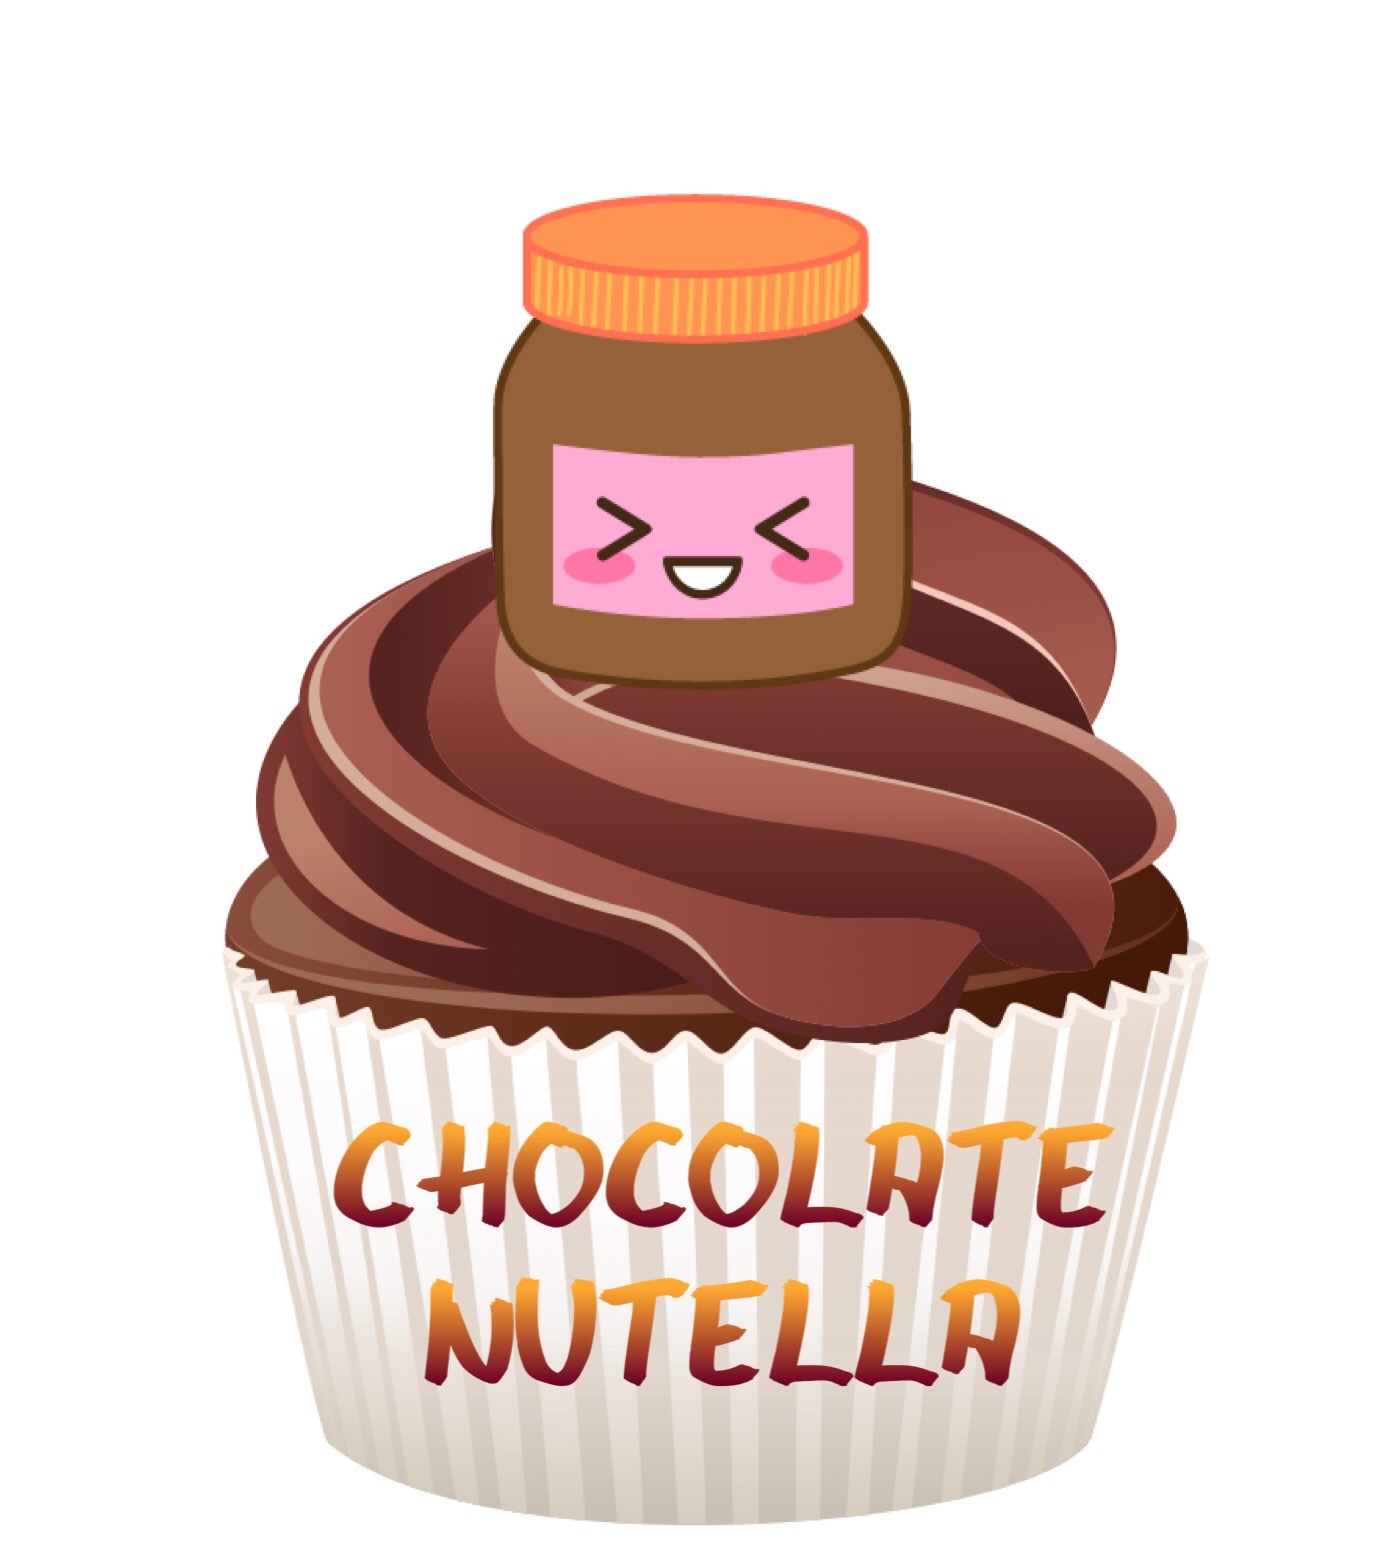 Chocolate Nutella